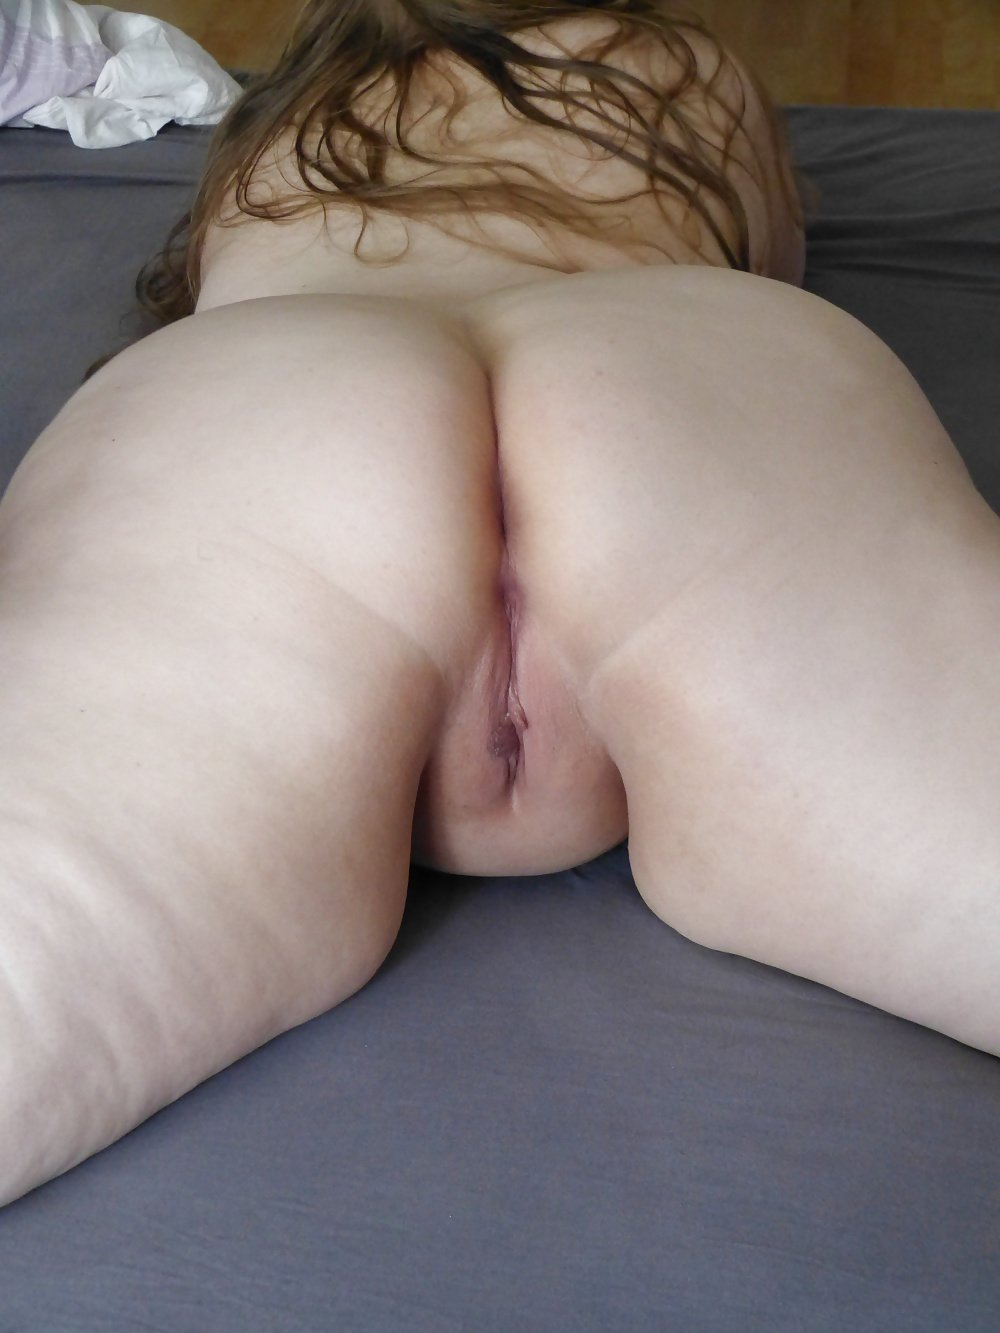 Nudist org bbw cougar webcam